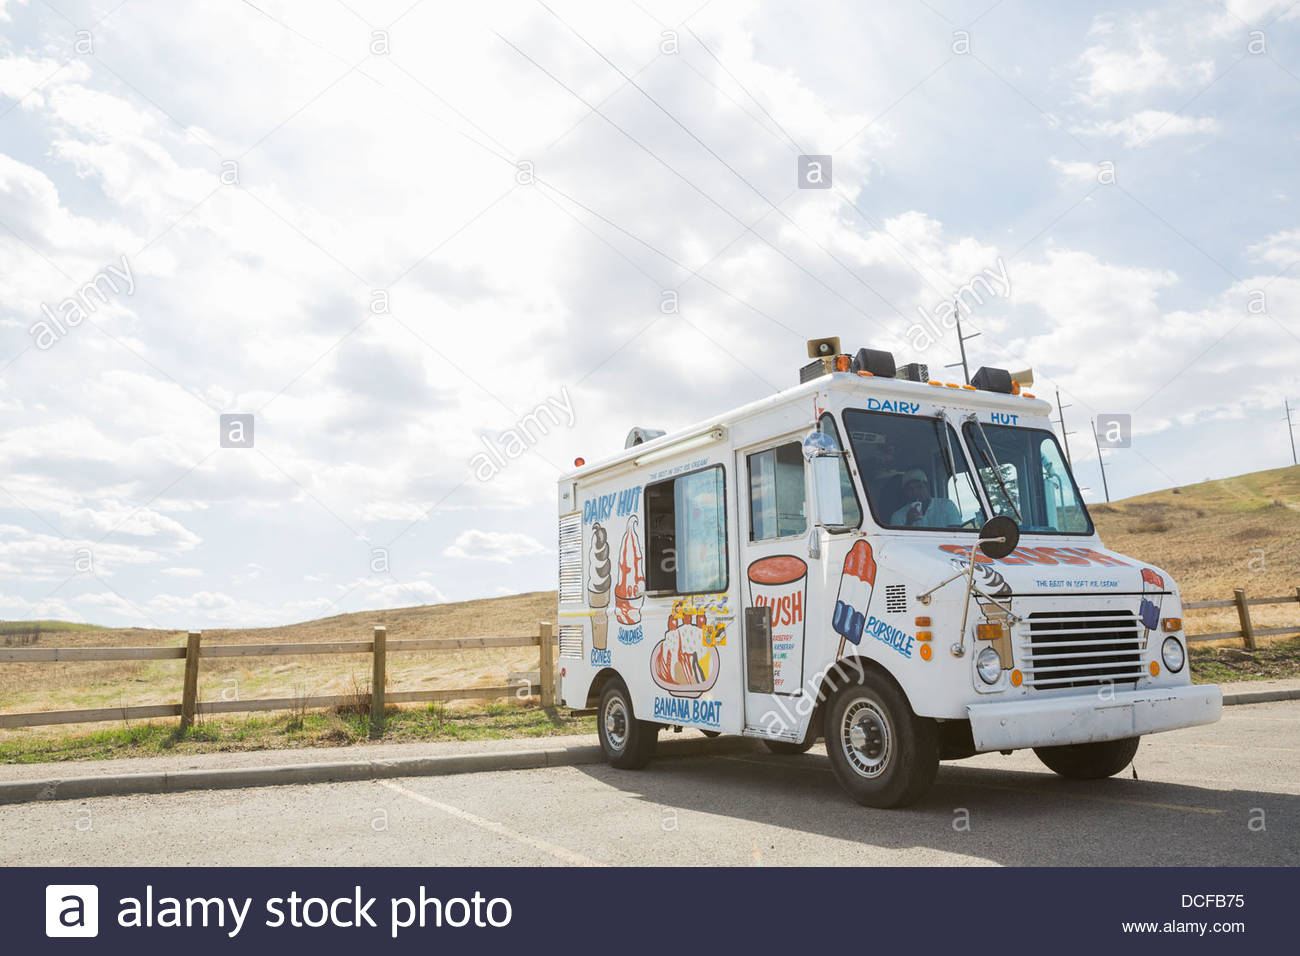 Ice cream truck parked in parking lot - Stock Image